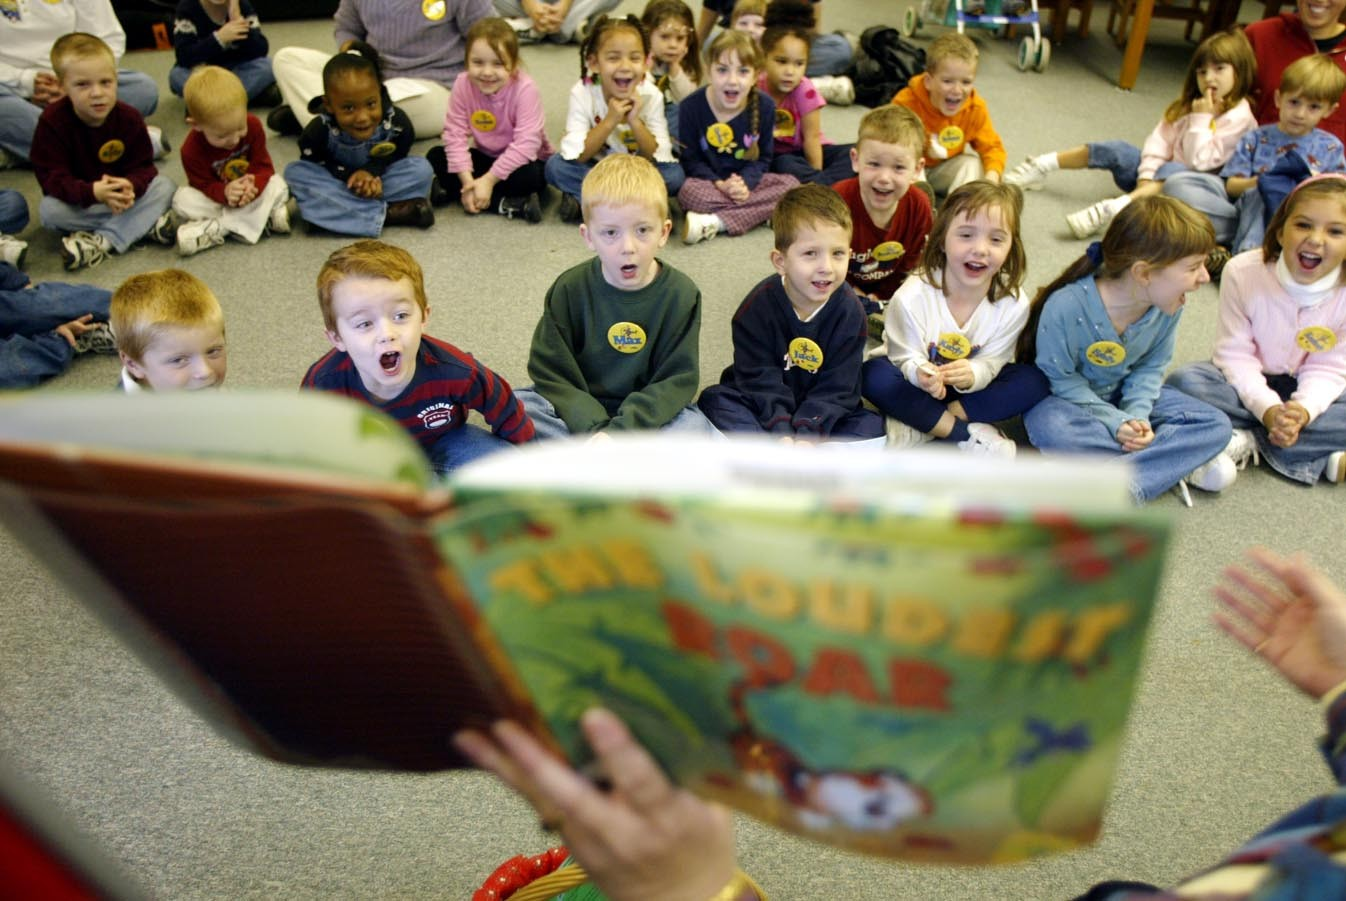 Storytime Resumes Colon Township Librarydivdiv class